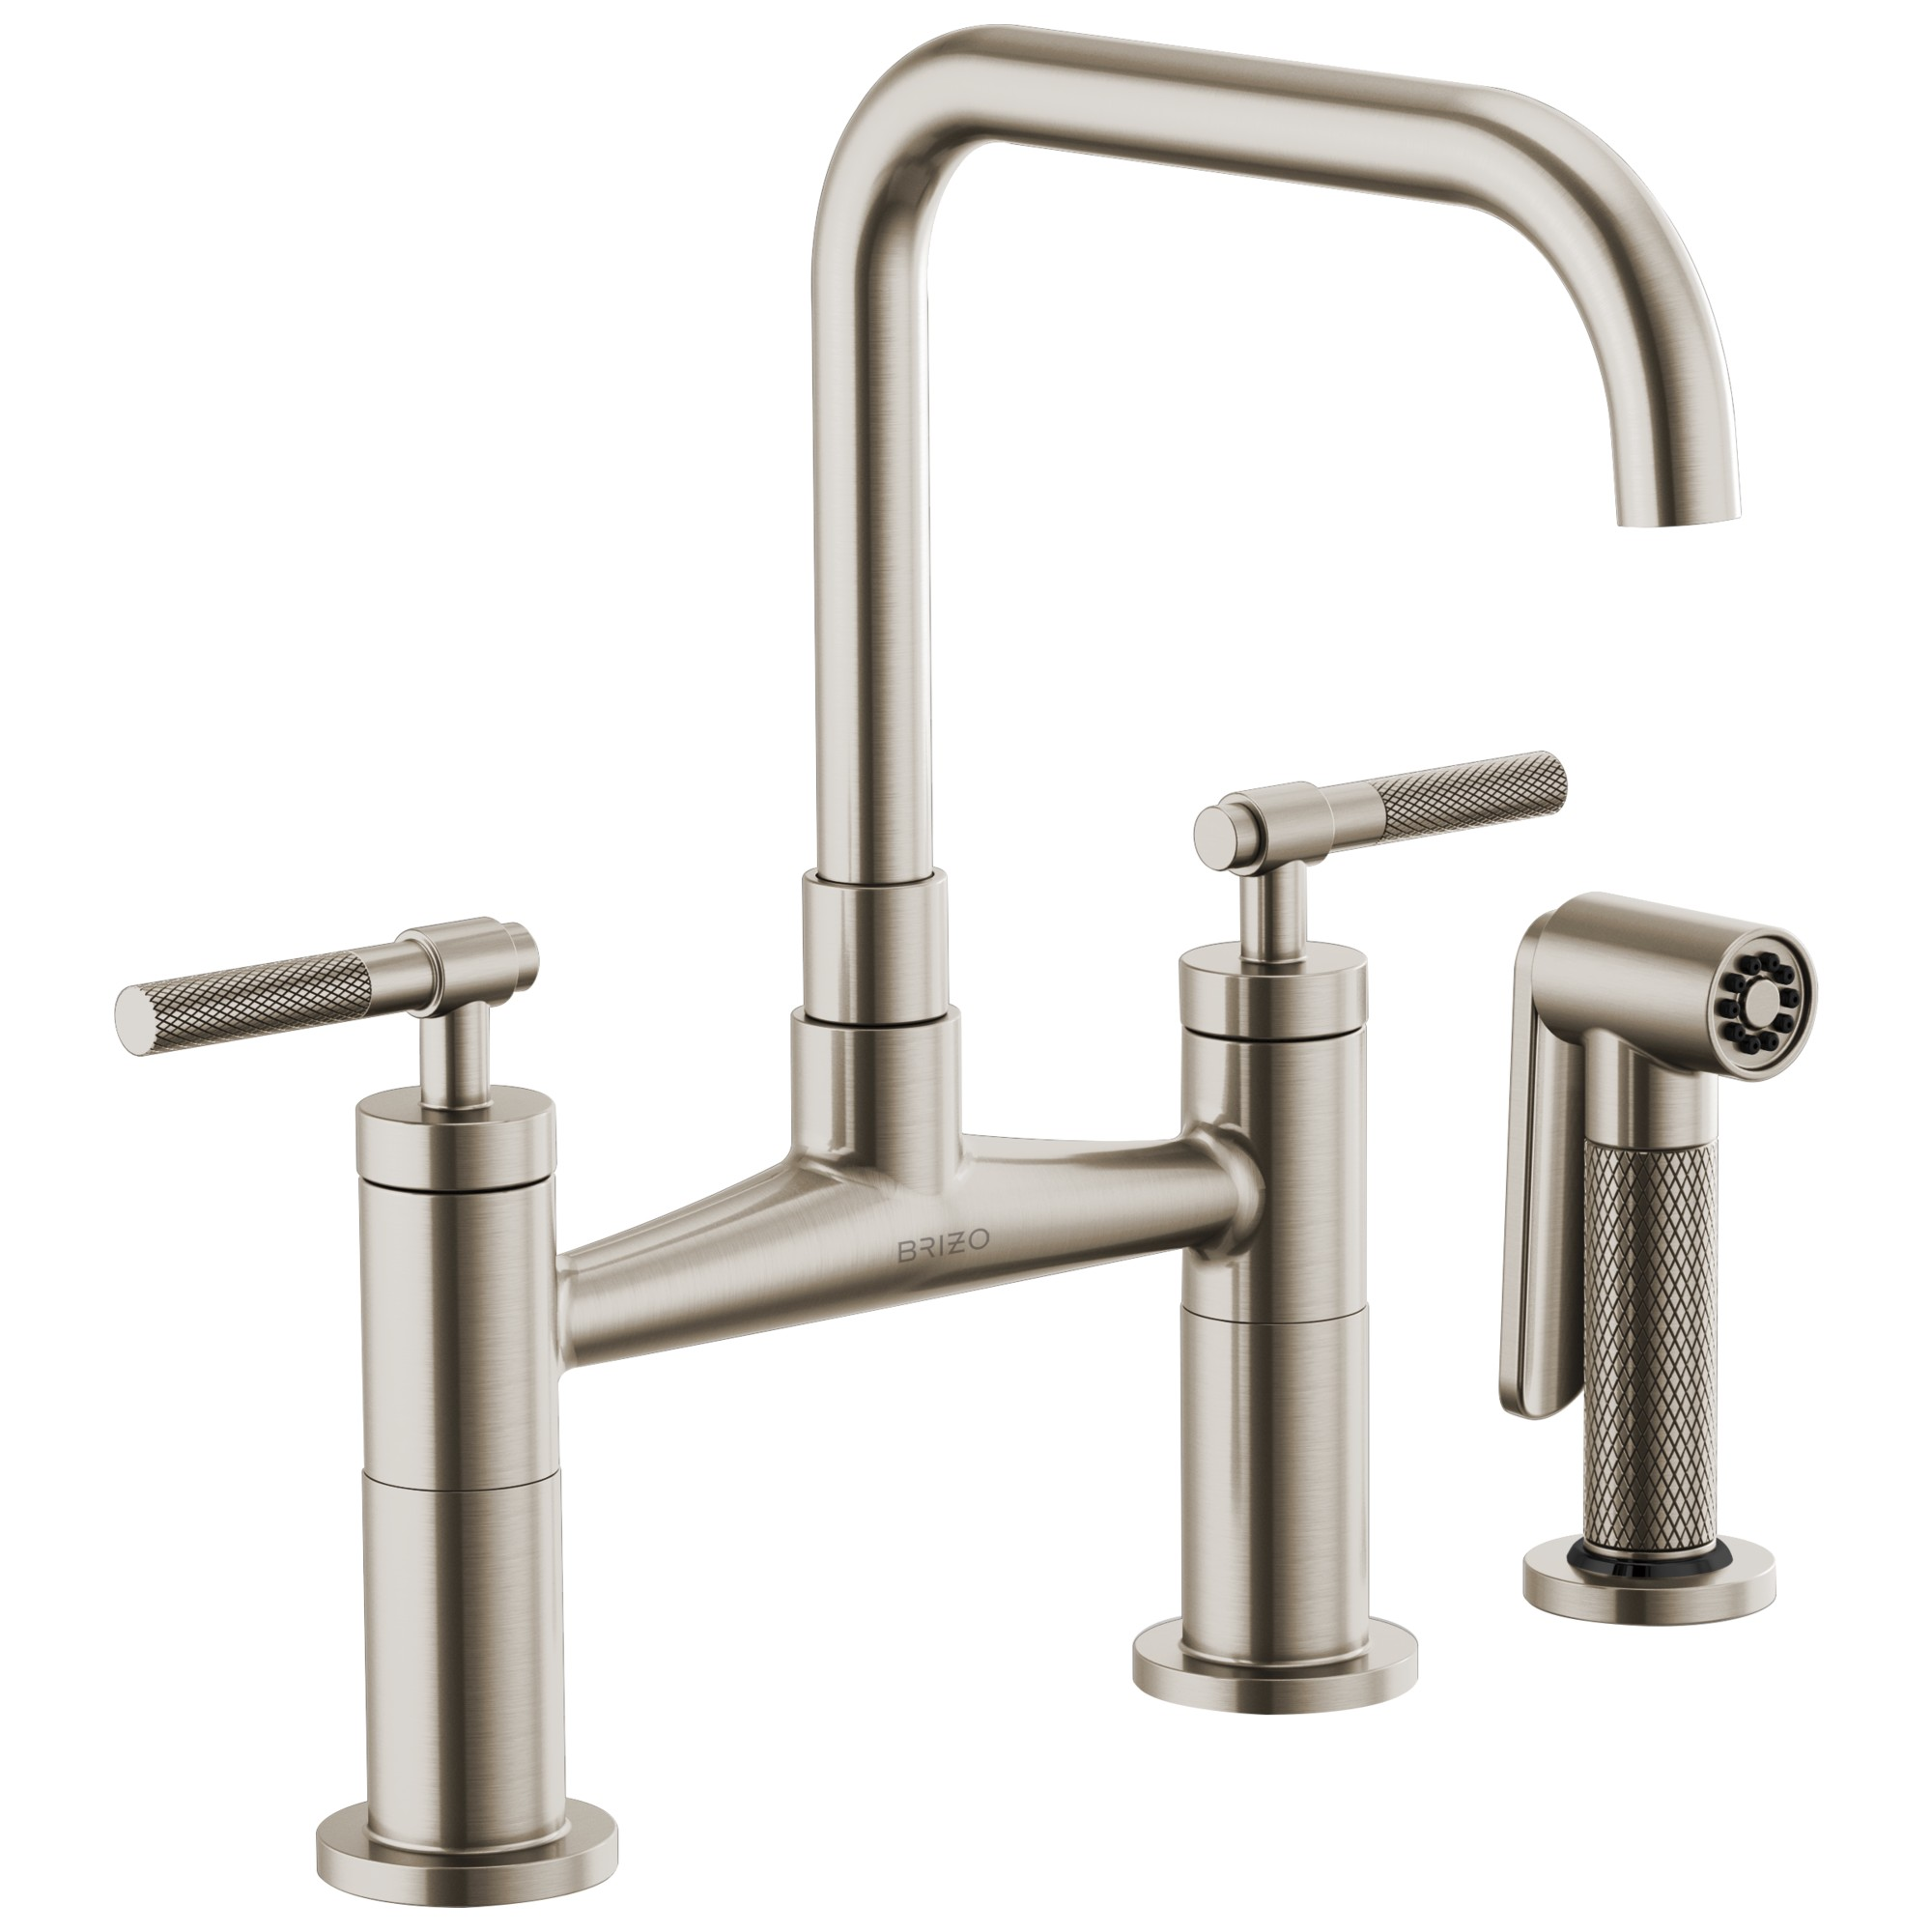 Brizo 62553LF-SS Litze Bridge Faucet with Square Spout and Knurled Handle - Stainless